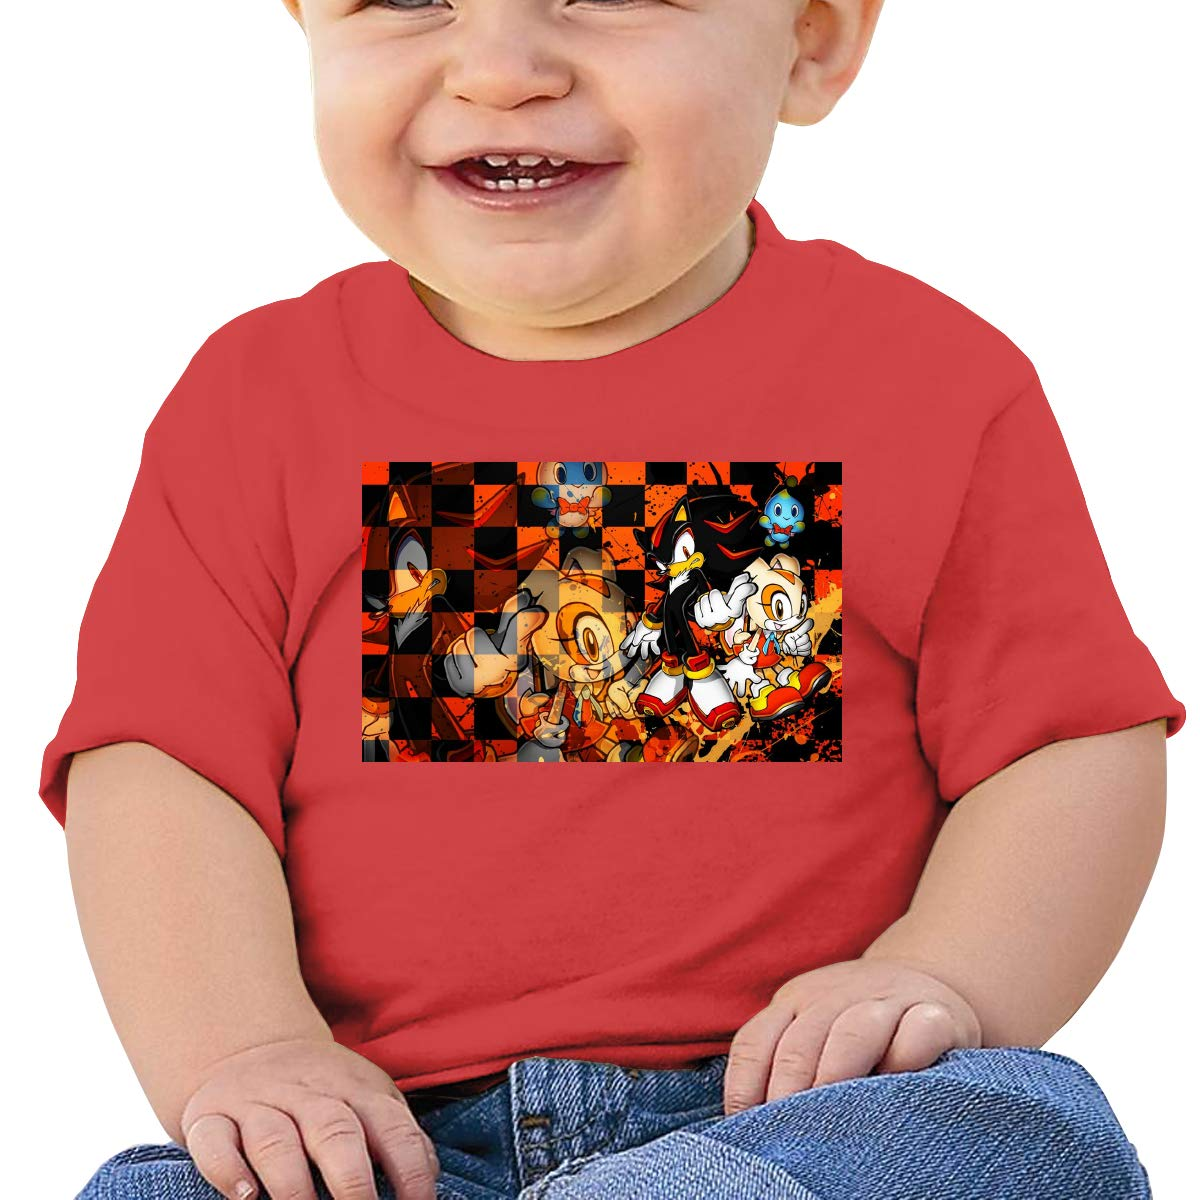 FHTD The Werehog Infant Graphic T-Shirt Baby Cartoon Cotton Tees Black